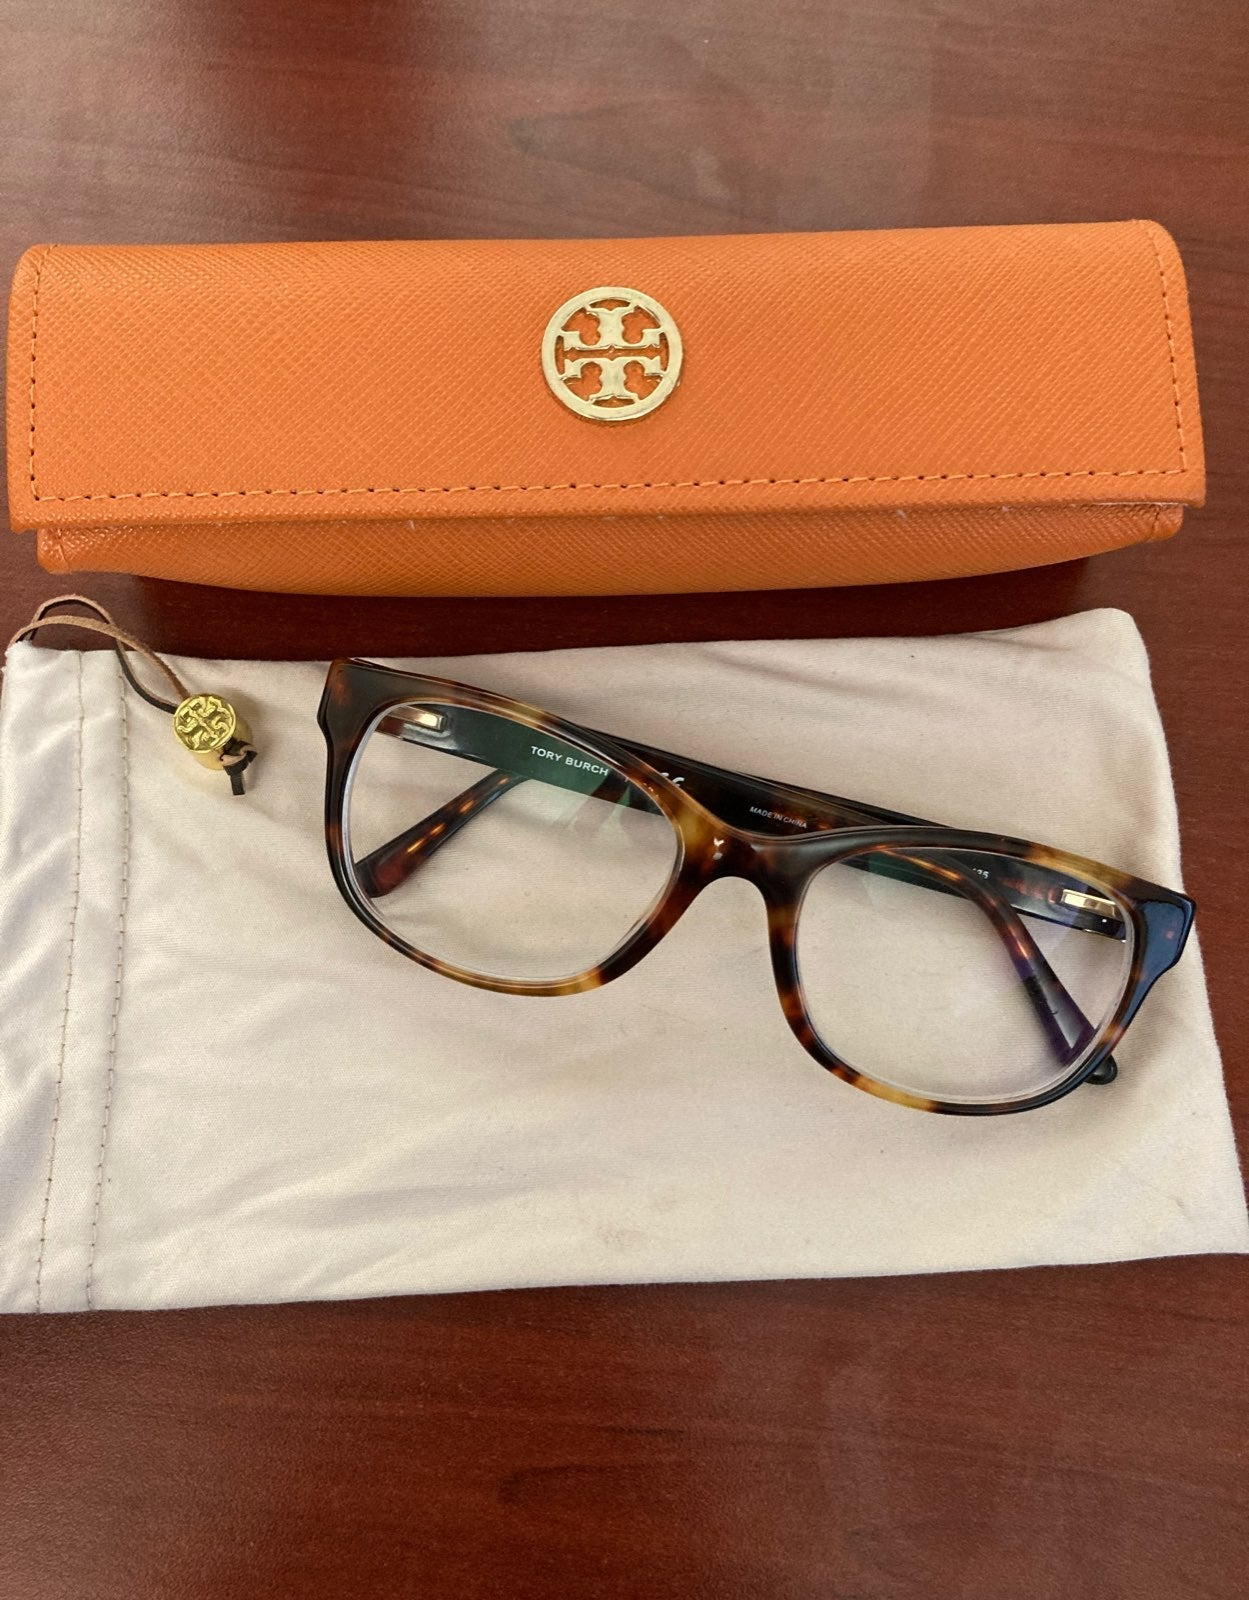 Tory Burch Eyeglass frames